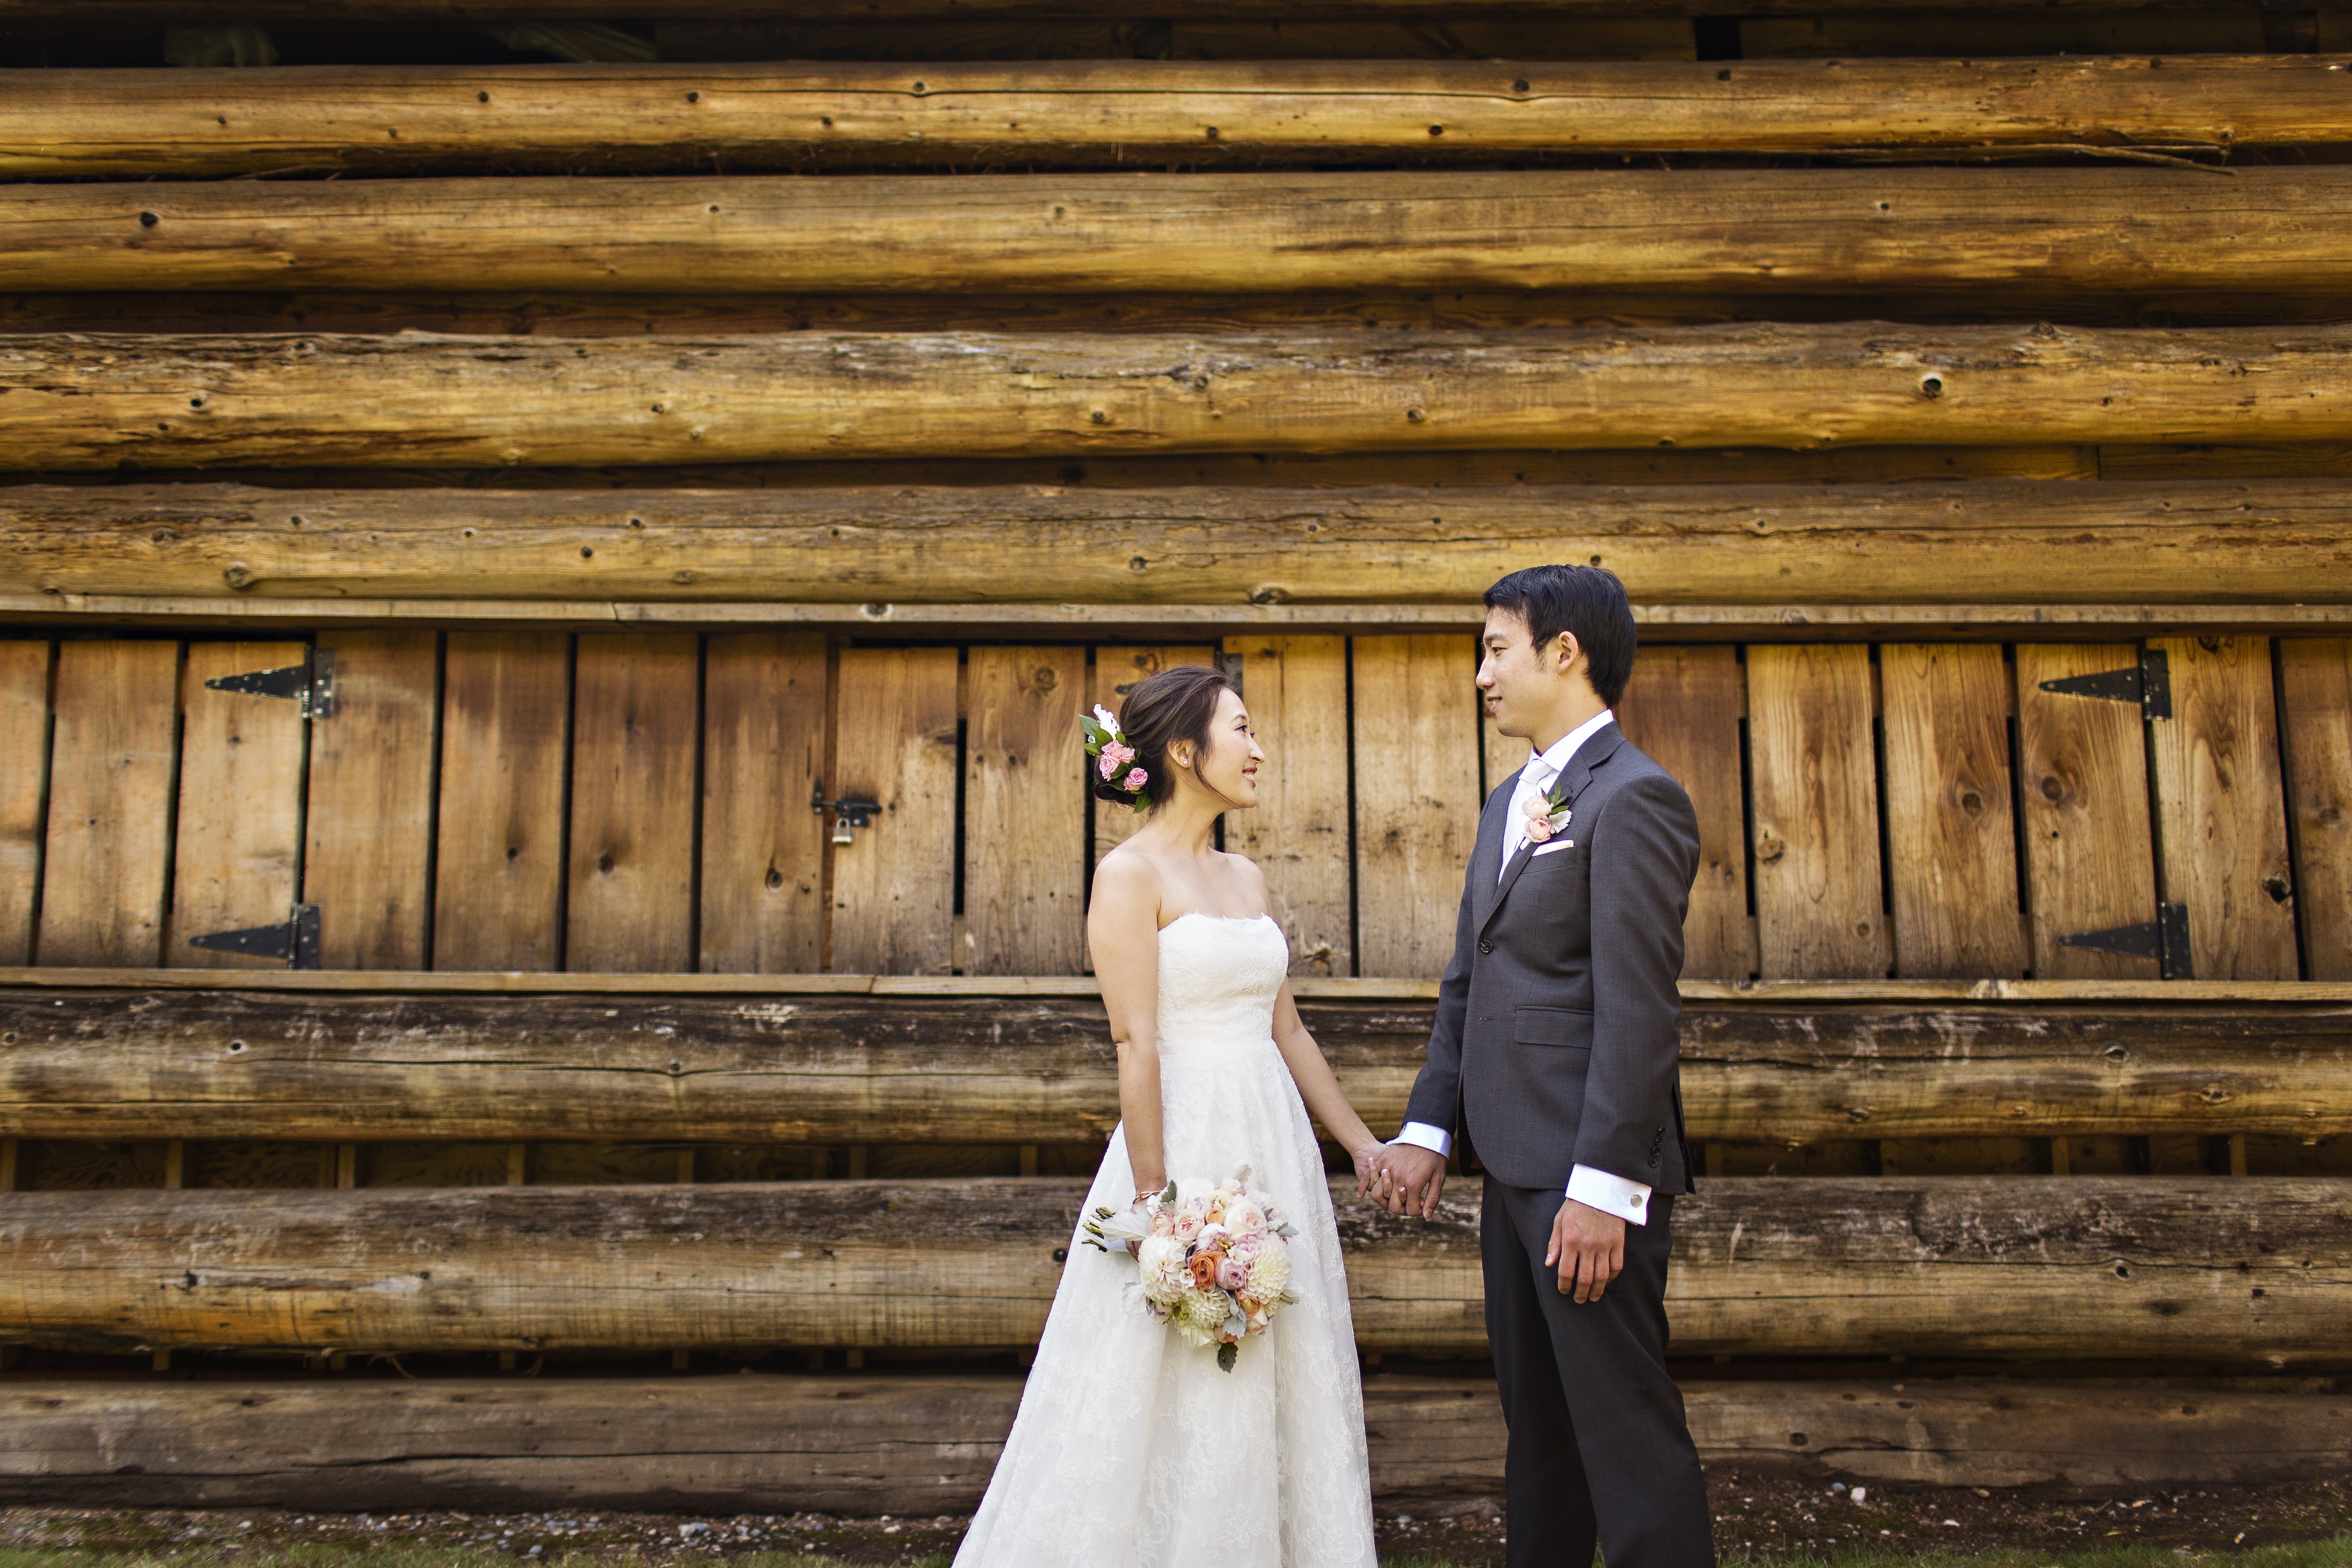 Robinswood House Wedding in Bellevue | Outdoor wedding log cabin background | Perfectly Posh Events, Seattle Wedding Planner | Courtney Bowlden Photography